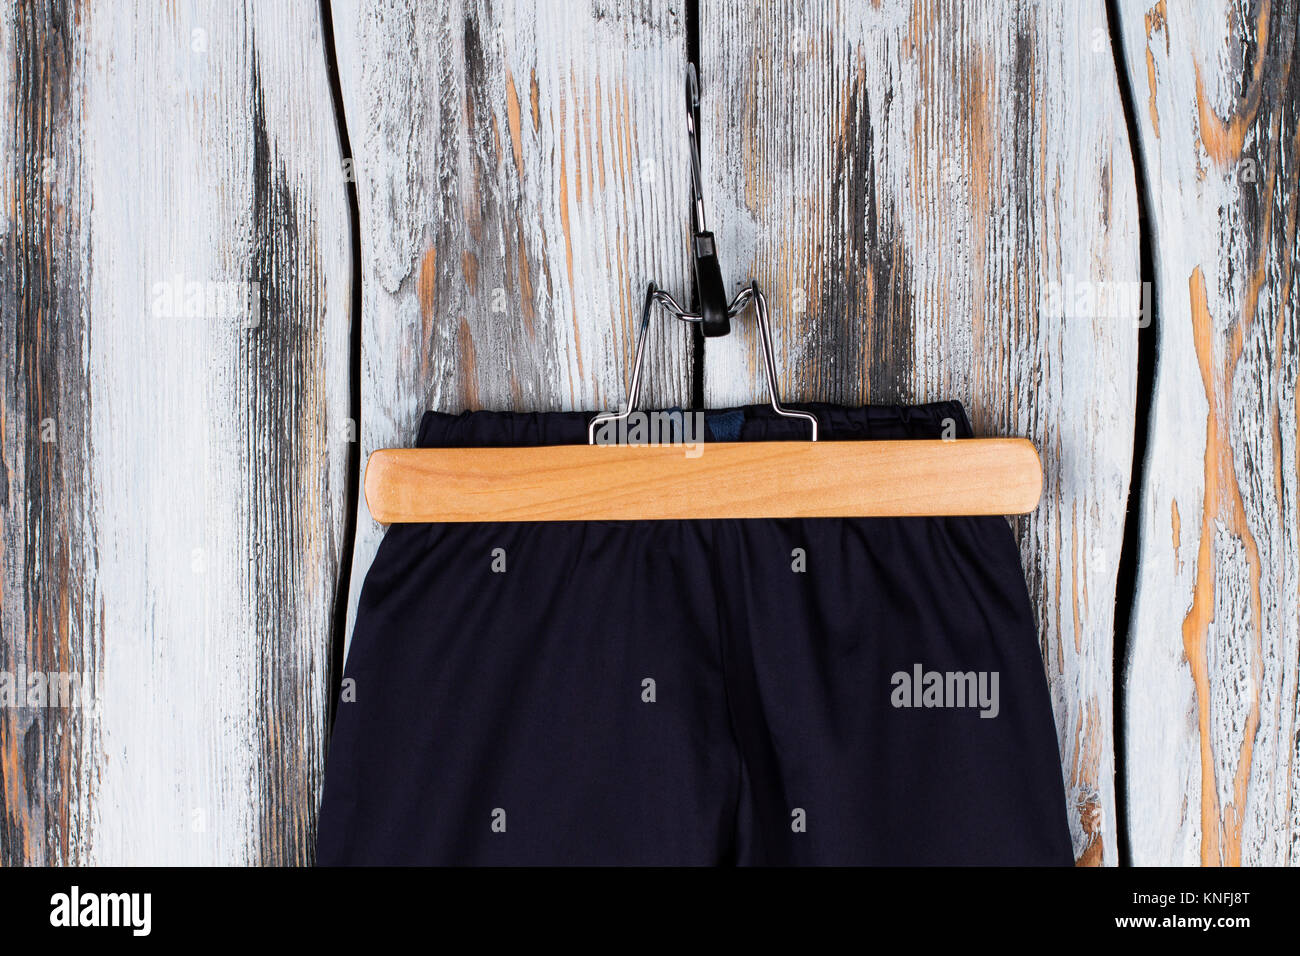 Pants on a wooden hanger - Stock Image